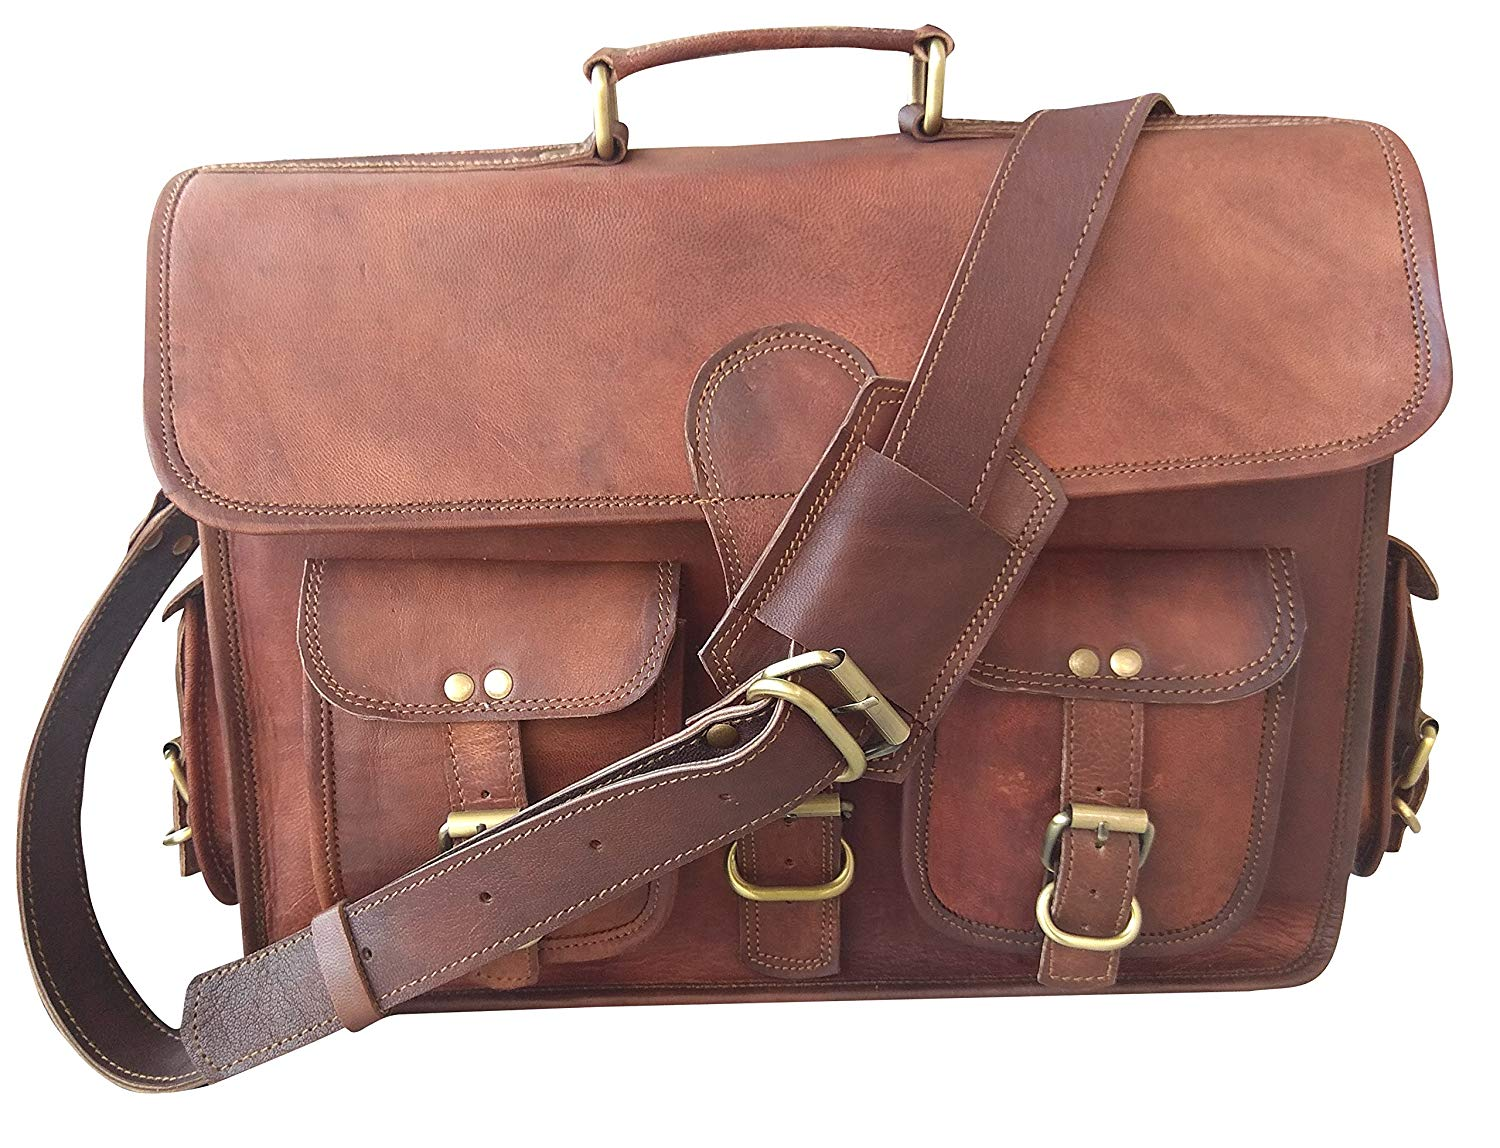 b746a2d891e0 Cheap Laptop Bag Satchel, find Laptop Bag Satchel deals on line at ...